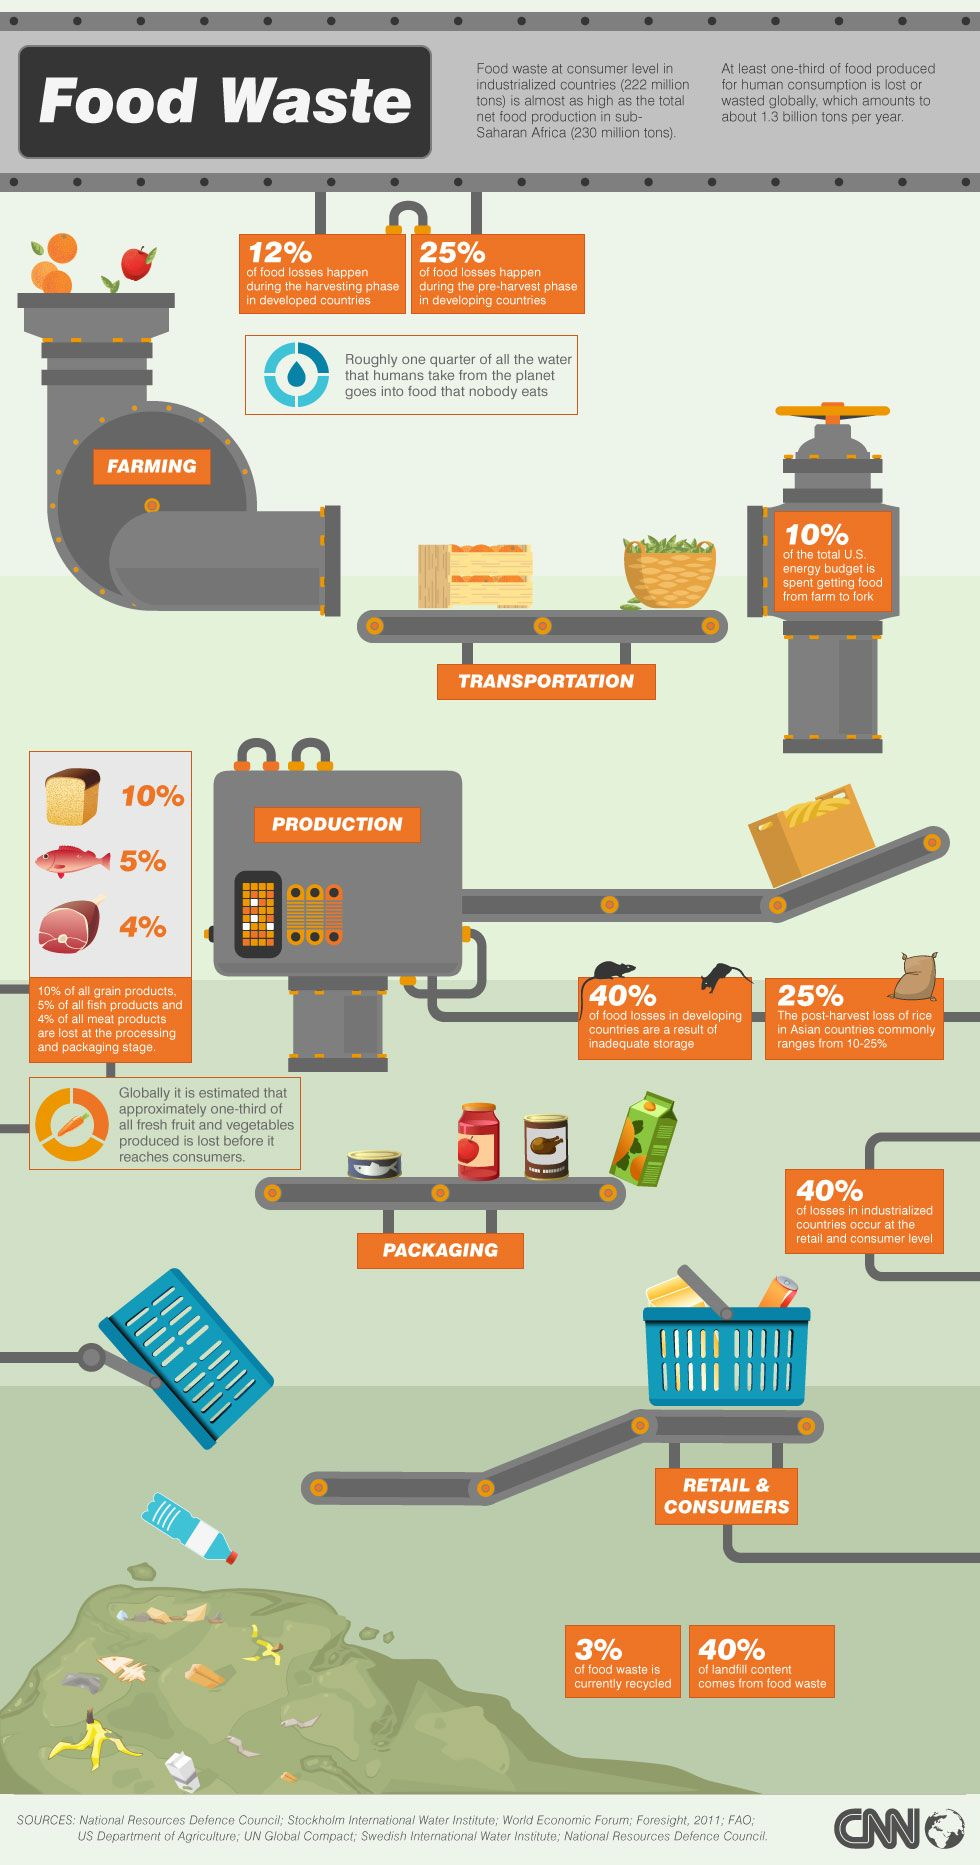 how to make ethanol from food waste